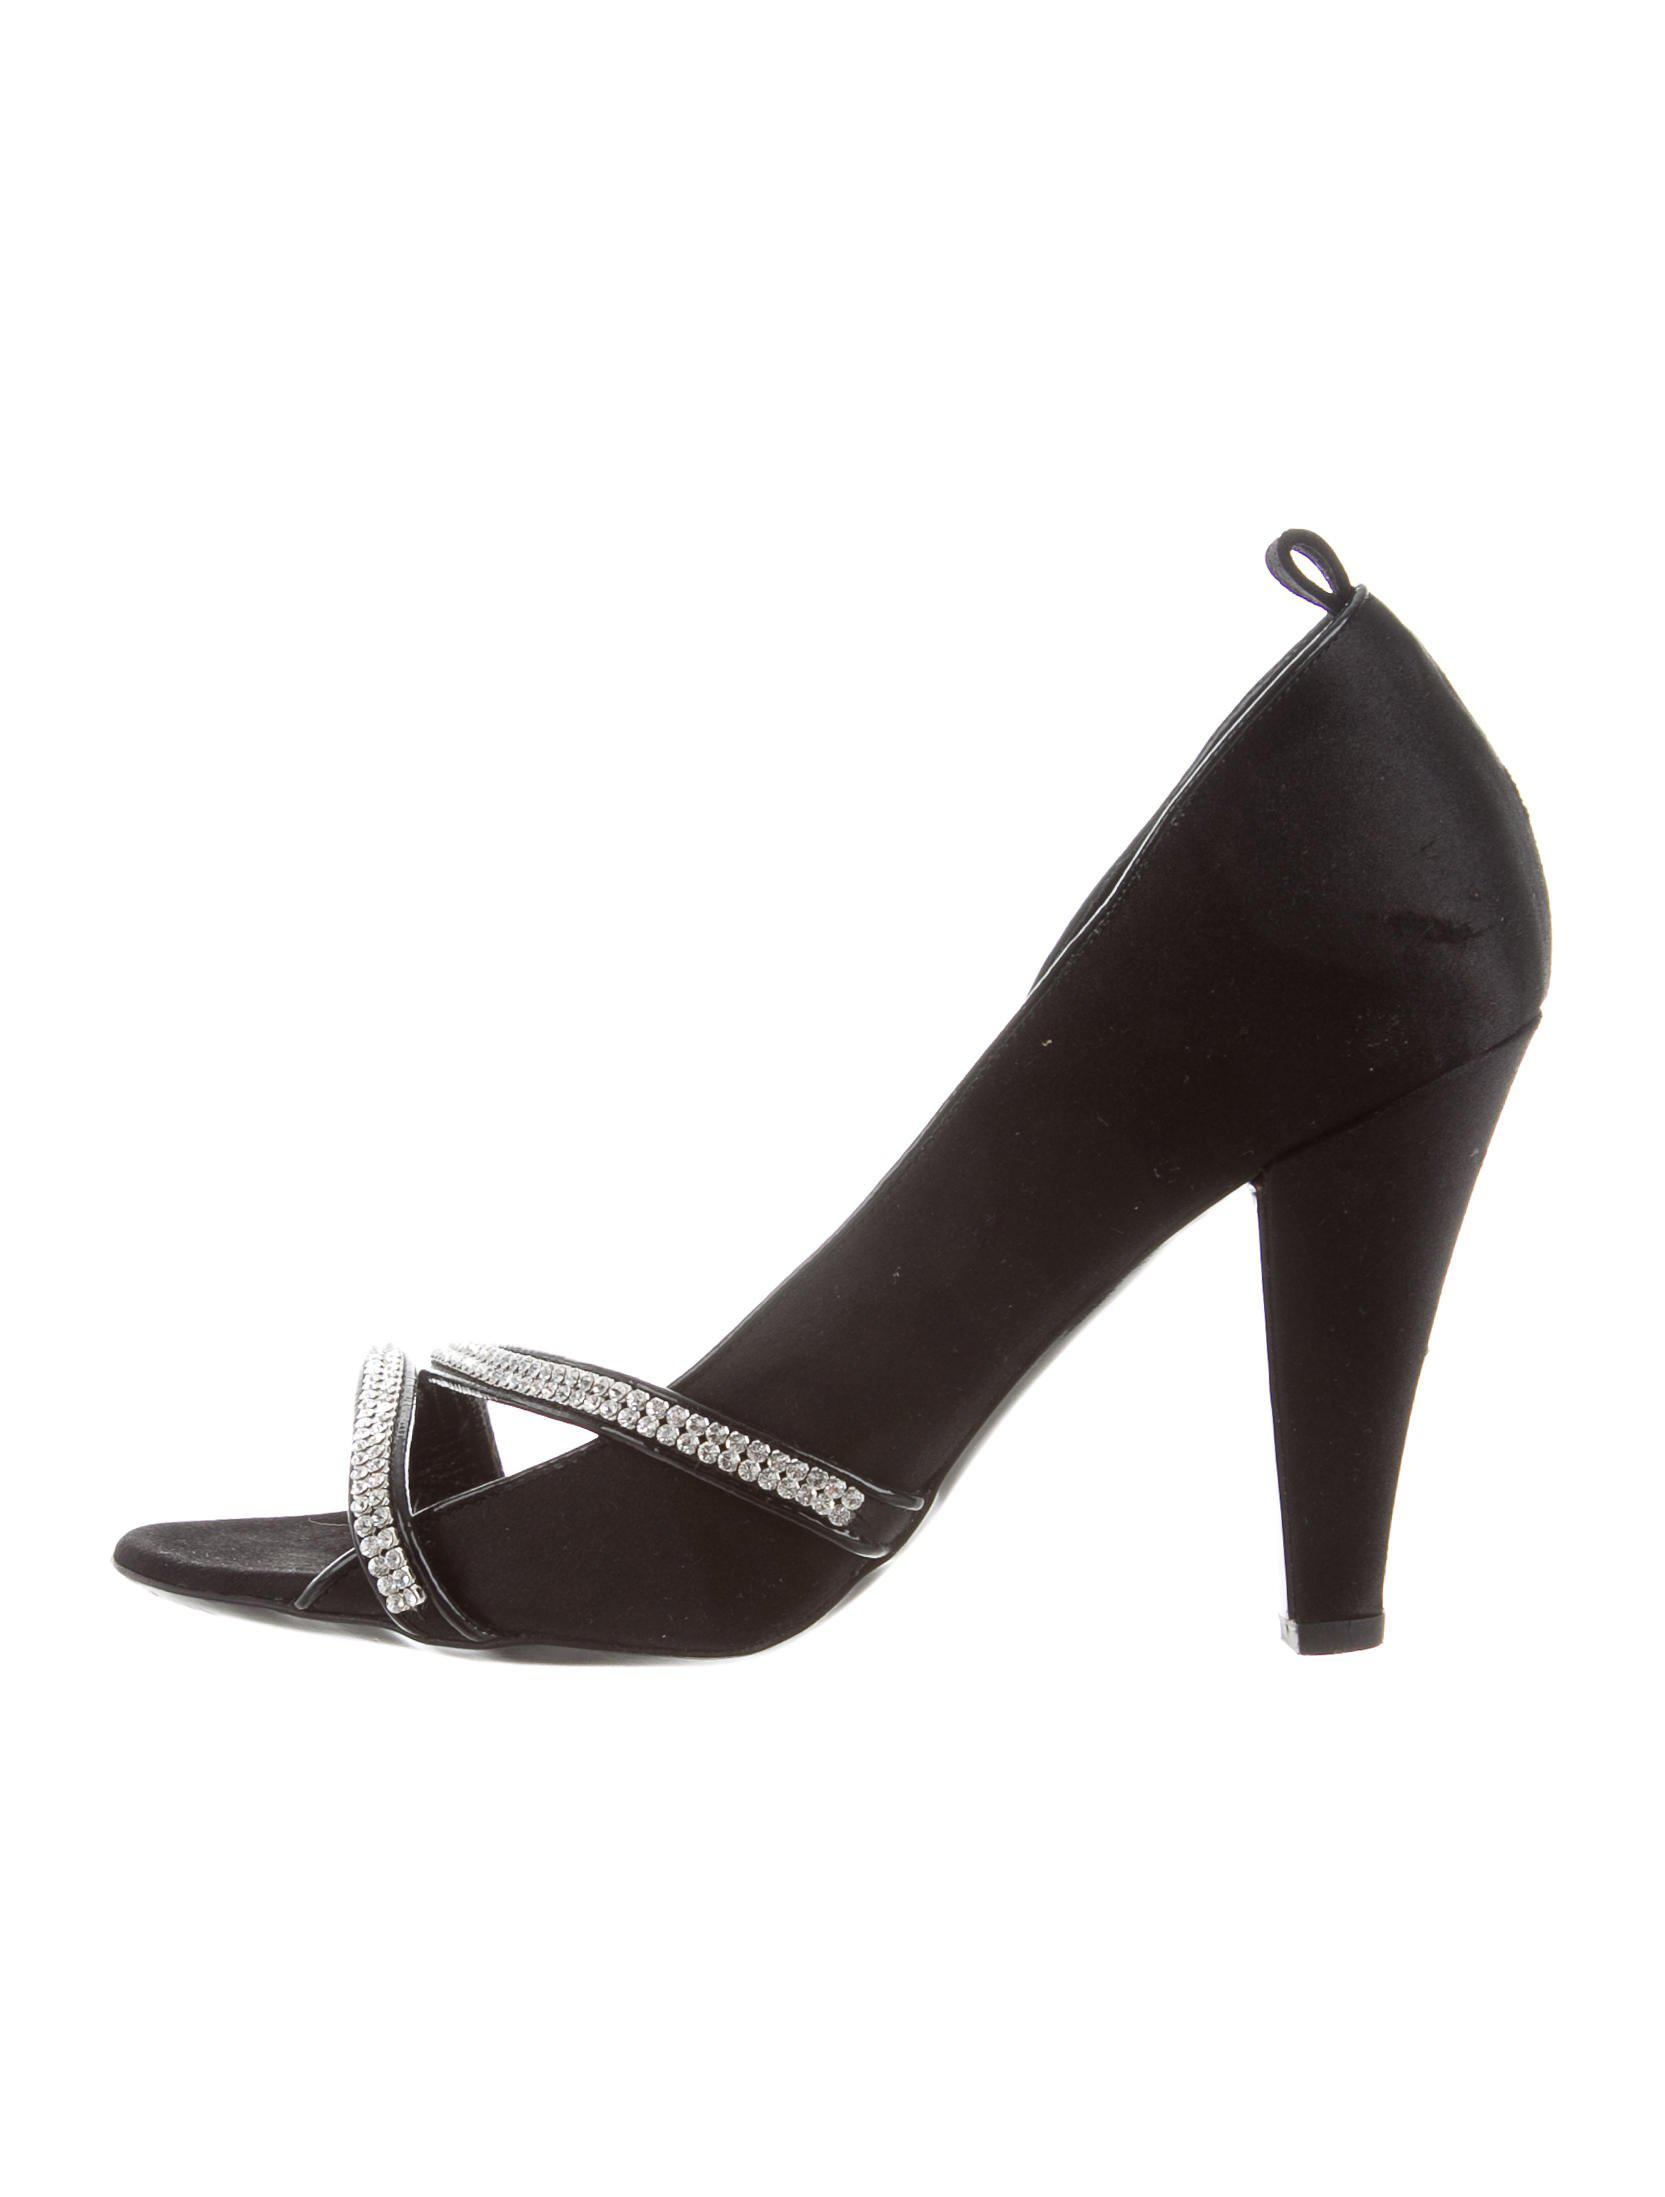 shopping online sale online Judith Leiber Leather D'Orsay Pumps cheap best wholesale shopping online free shipping 3arfIPT2